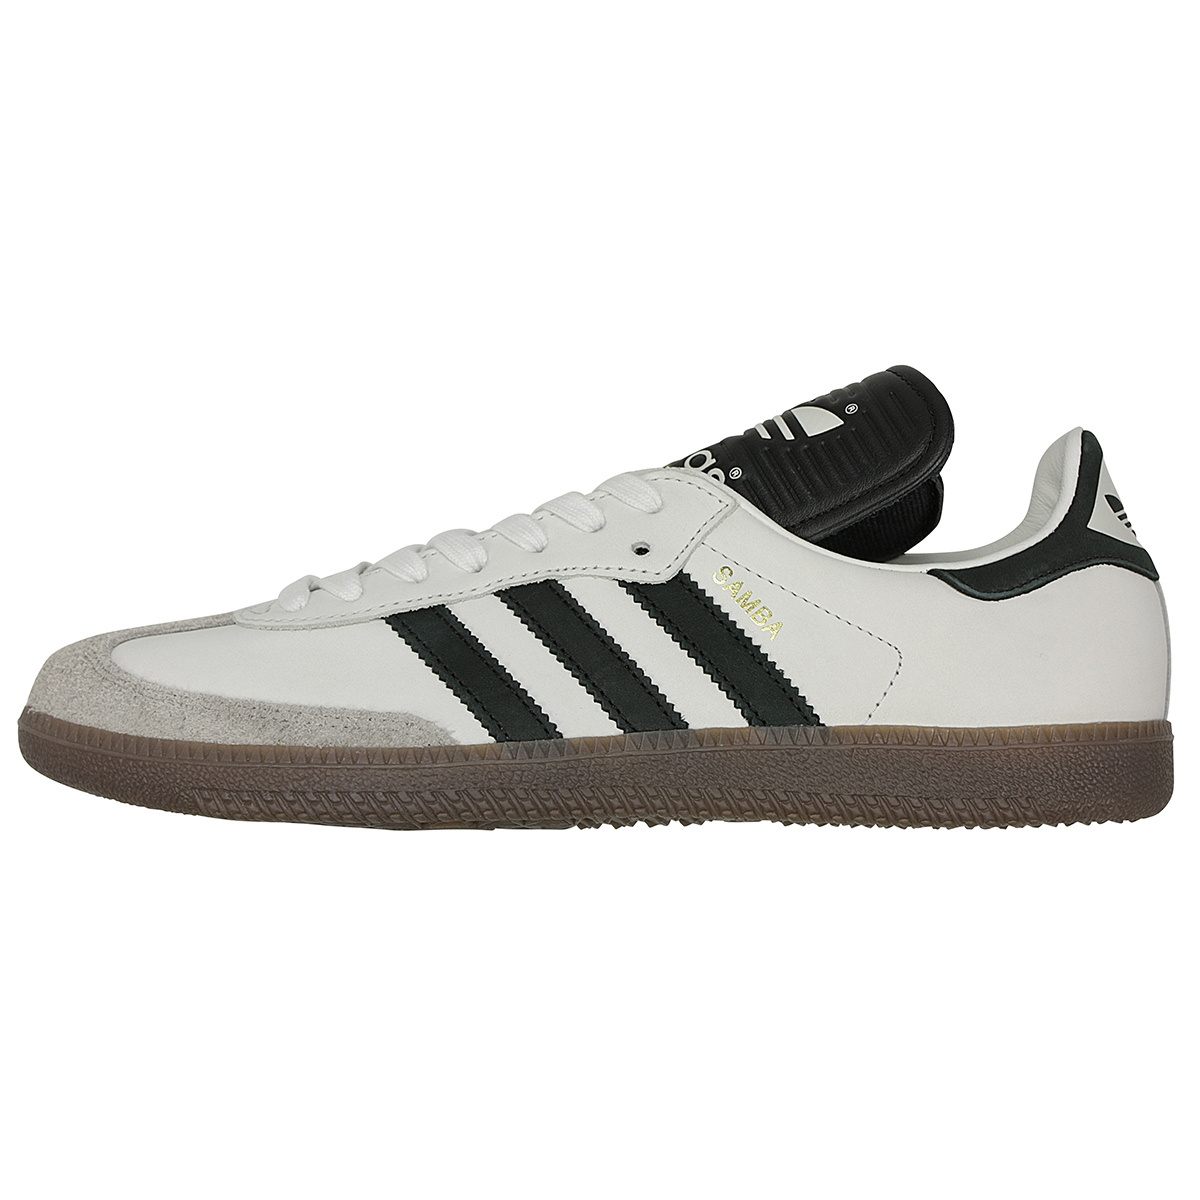 adidas originals samba made in germany off white black eliminator e store building. Black Bedroom Furniture Sets. Home Design Ideas